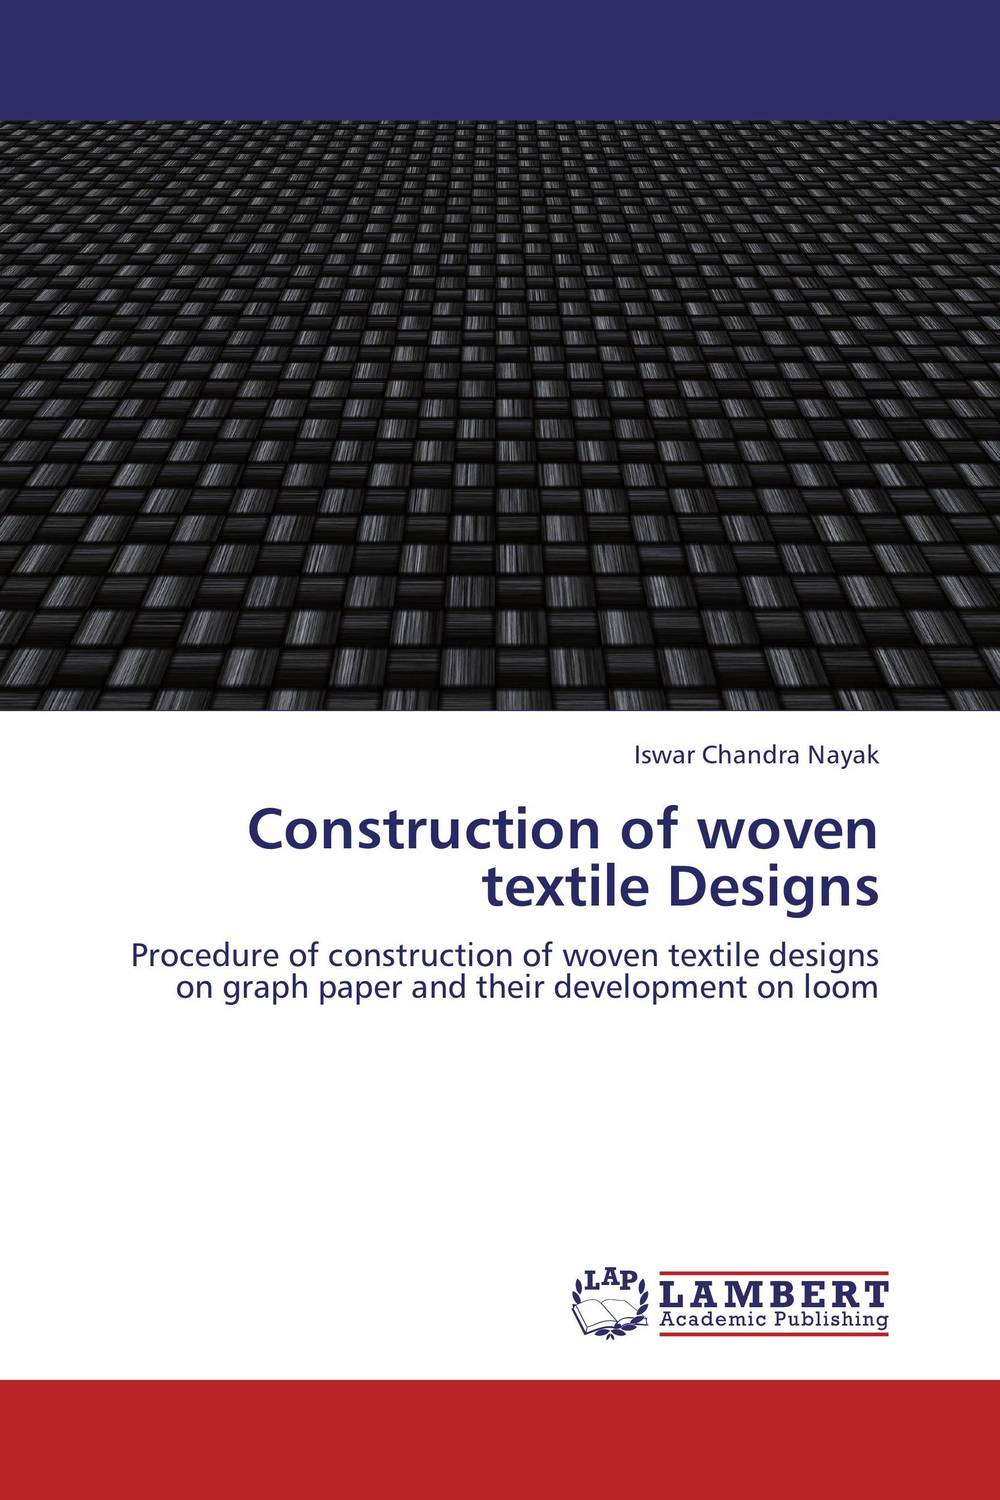 Construction of woven textile Designs textile volume 1 issue 3 the journal of cloth and culture textile